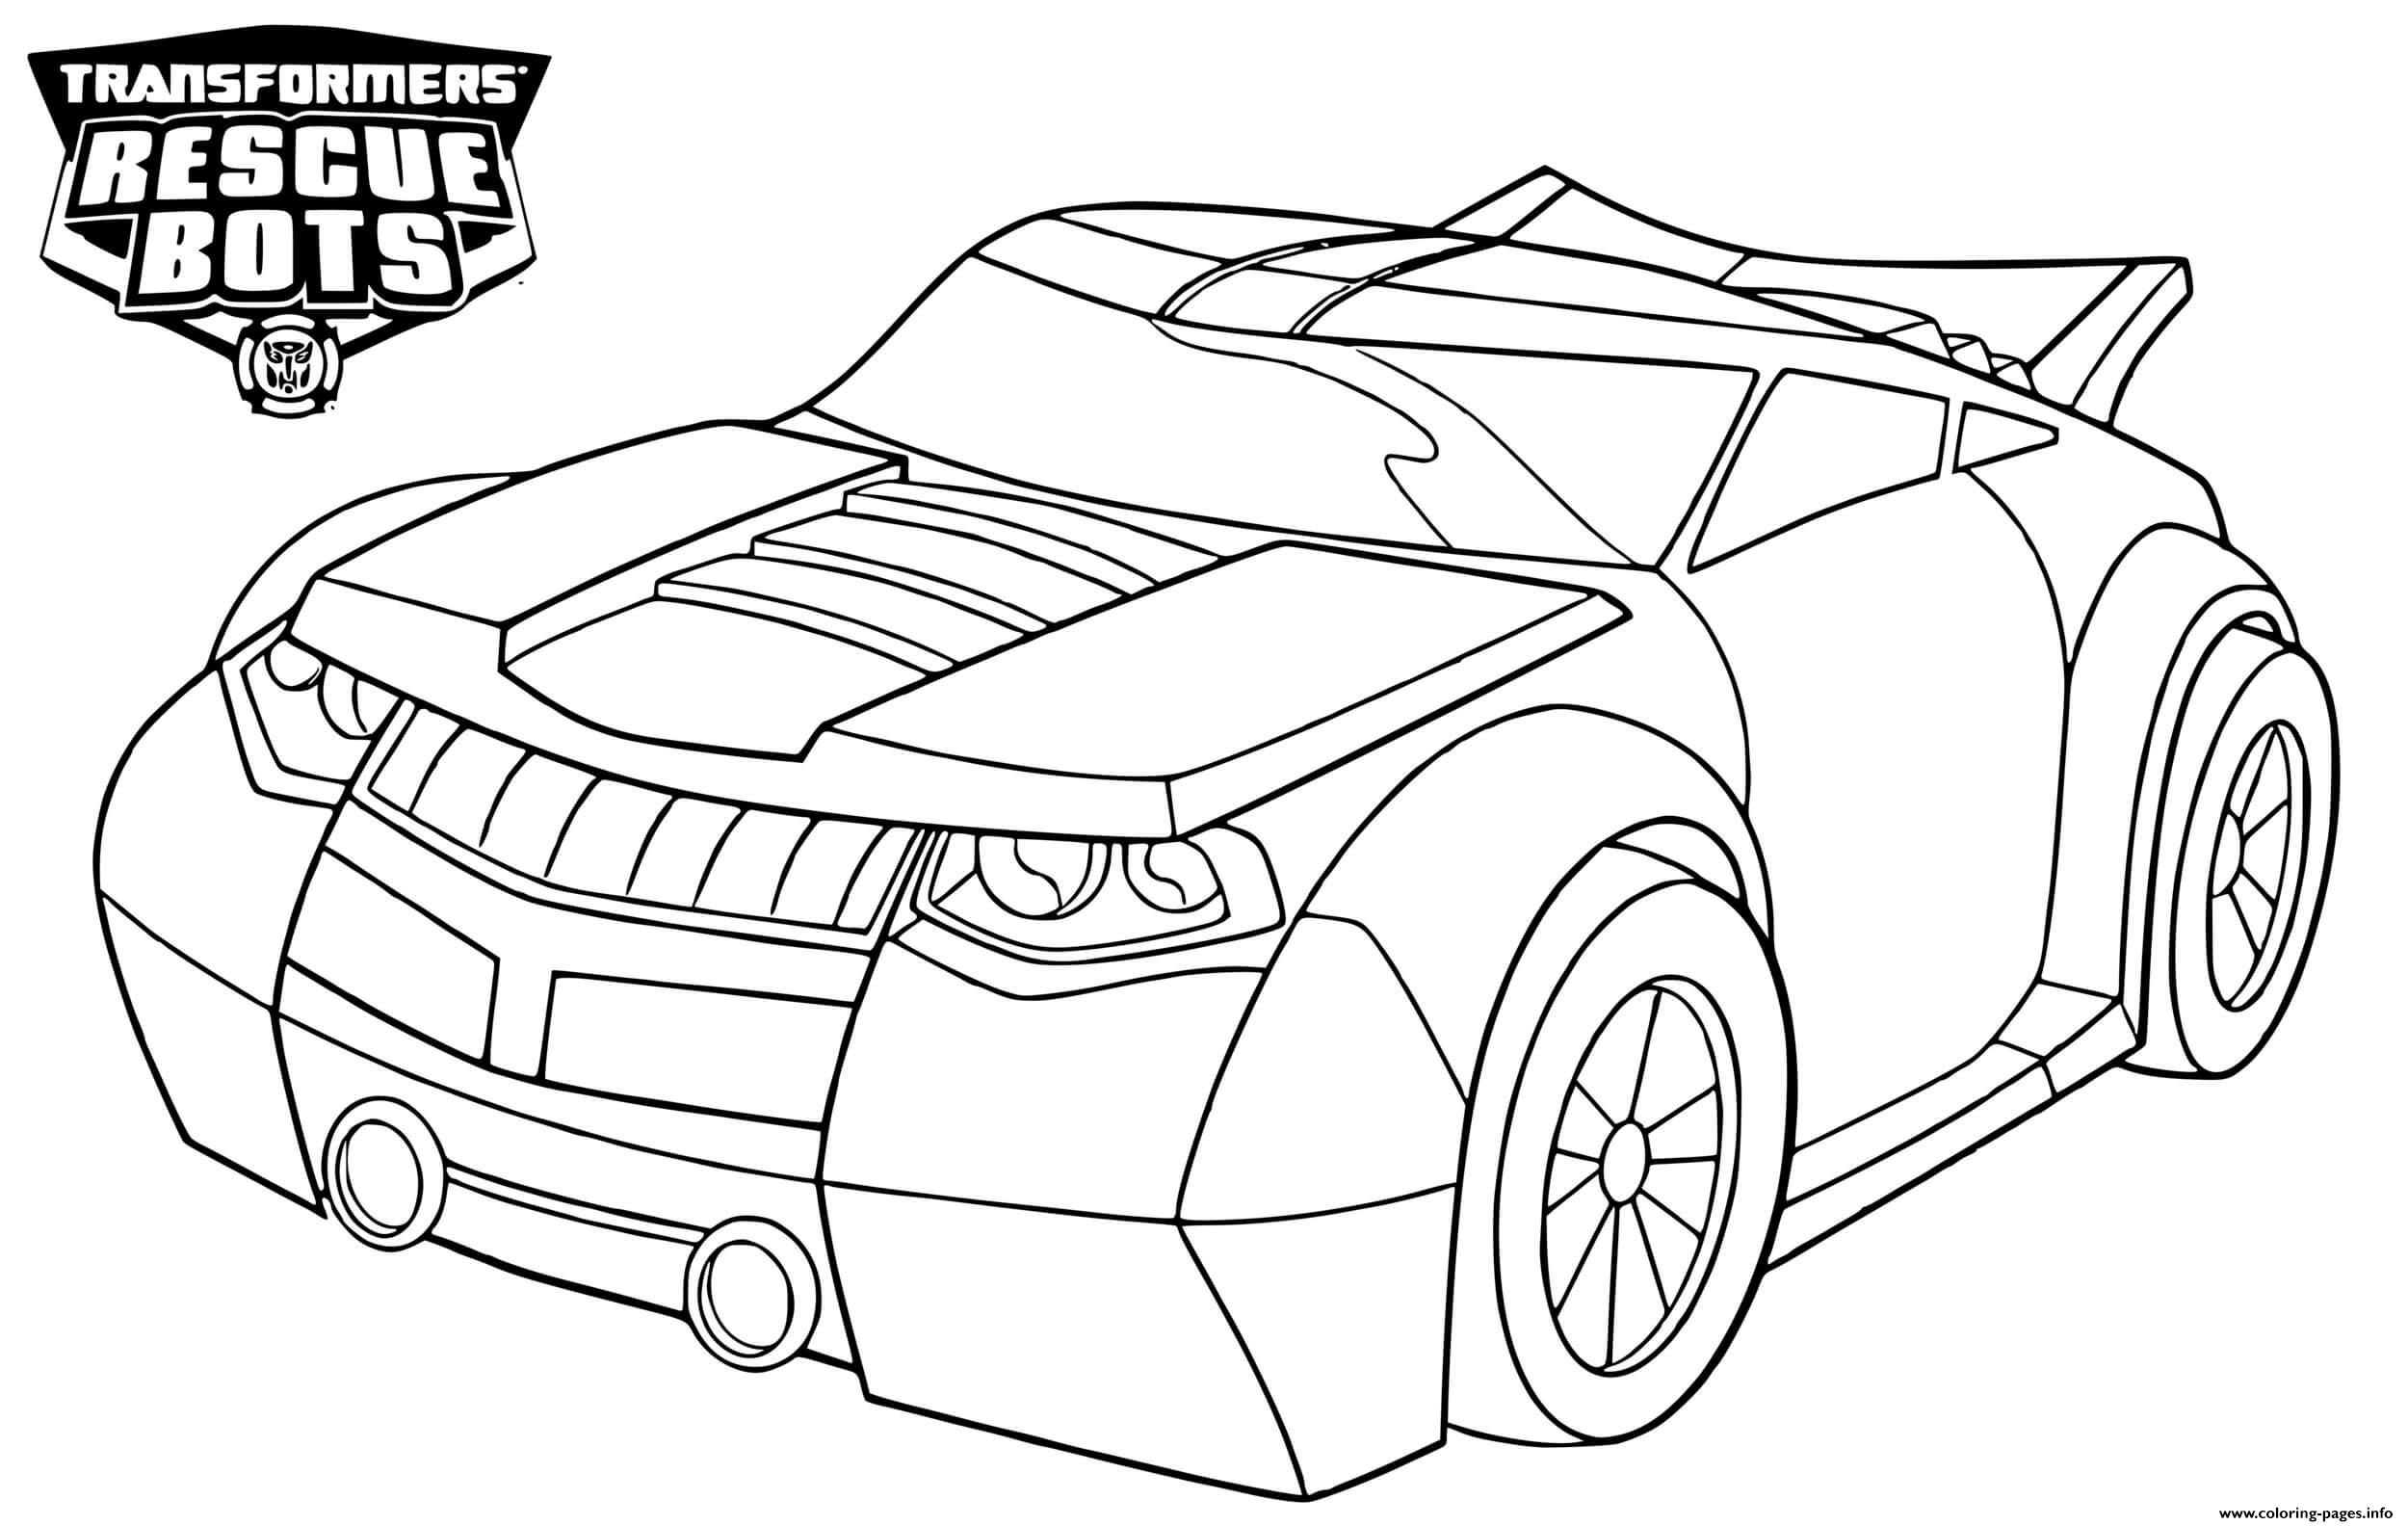 Transformers Rescue Bots Bumblebee Coloring Pages Printable